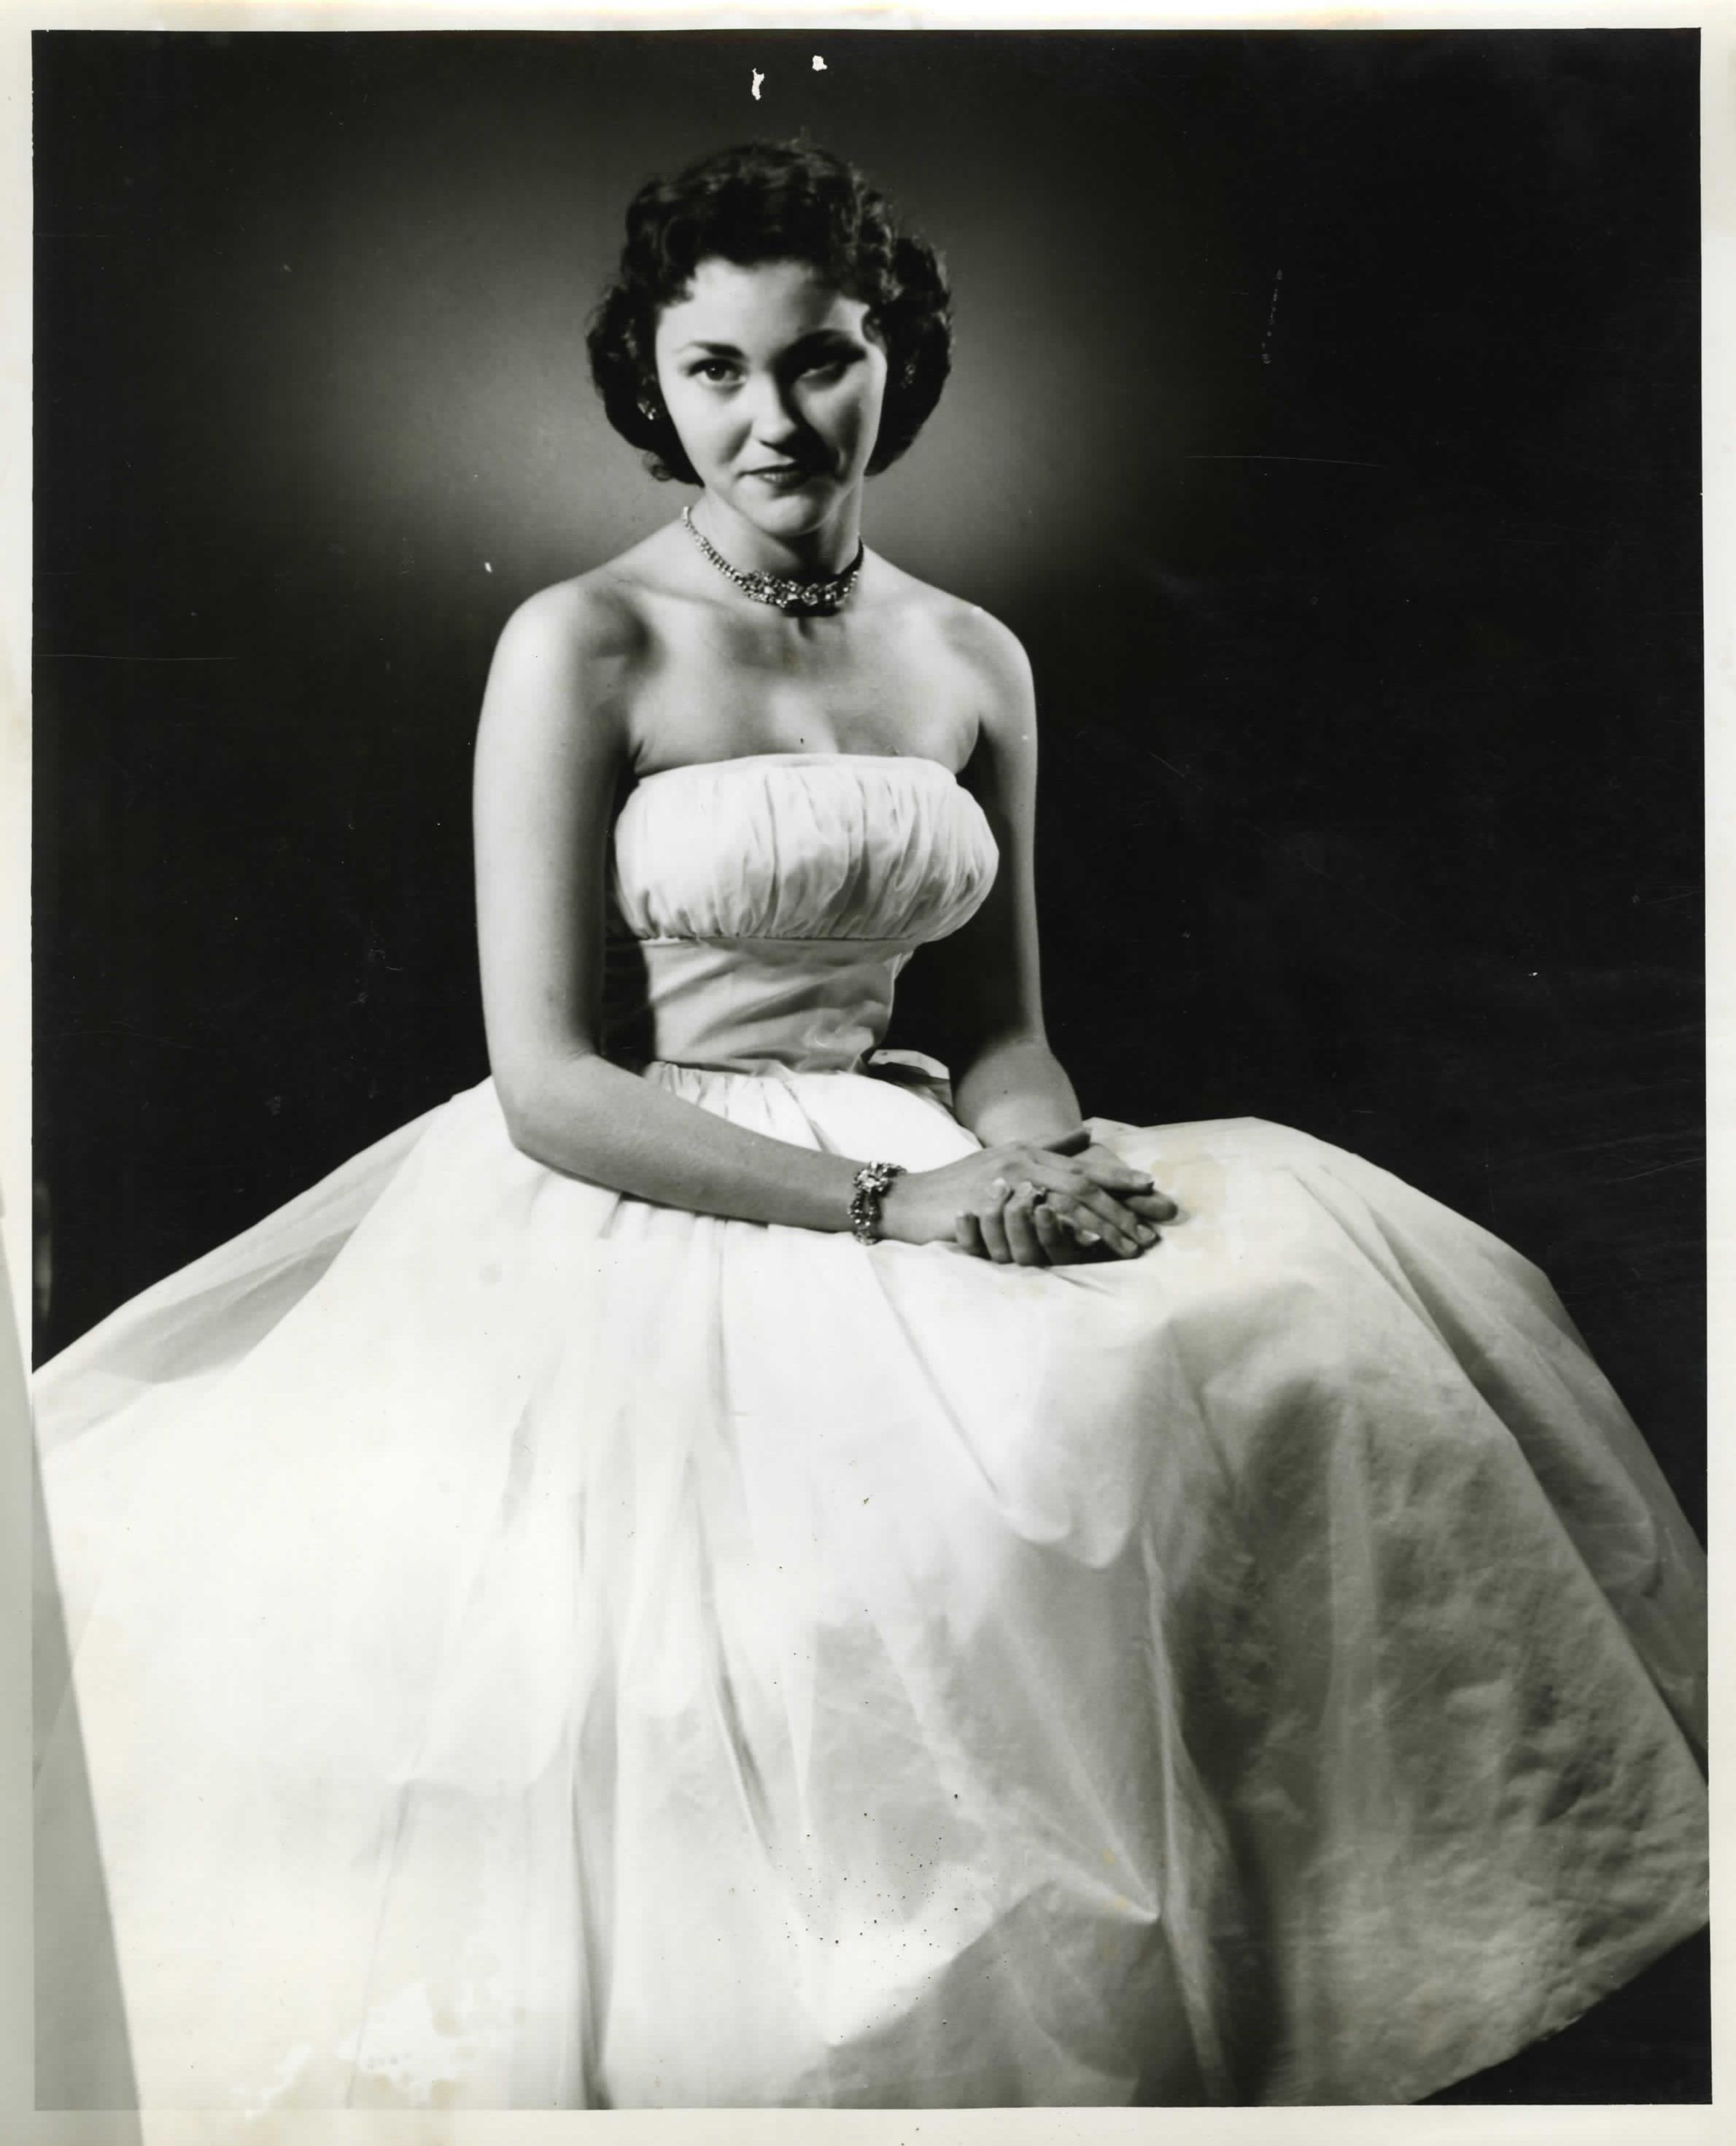 Claudette Yancey, Miss Denton Pageant contestant, 1954.